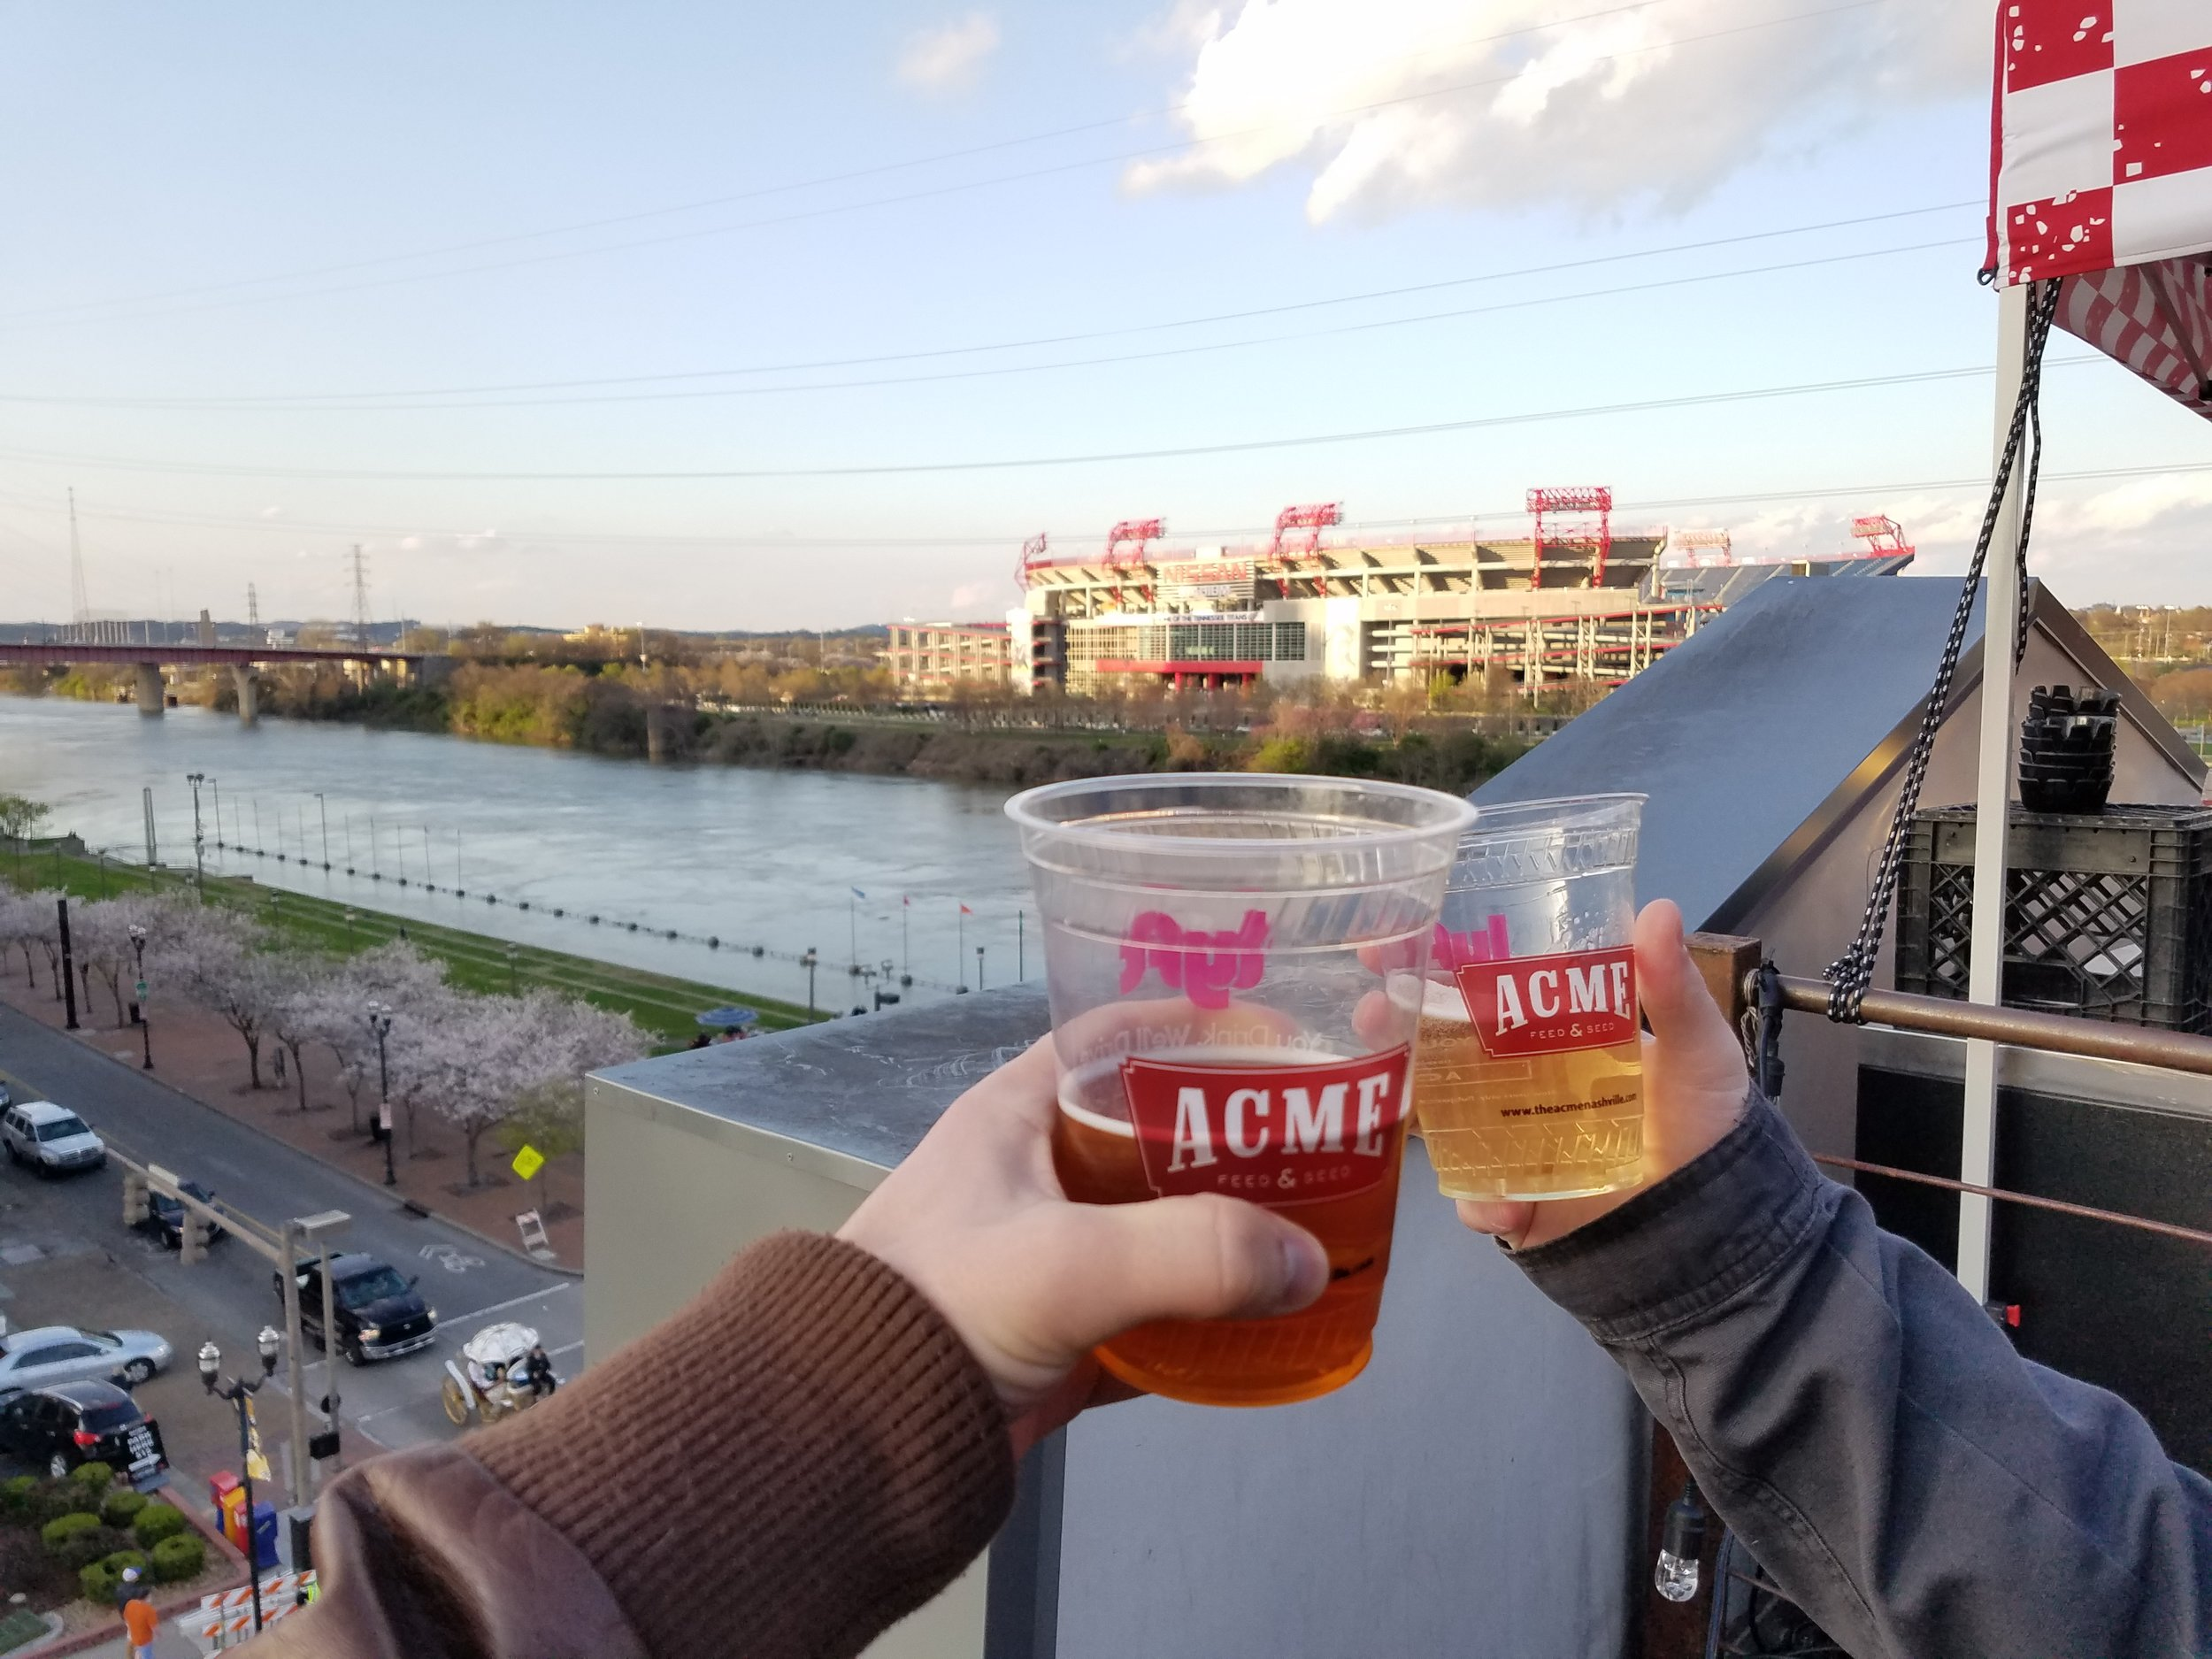 Brews and views are on tap at Acme's open-air rooftop bar